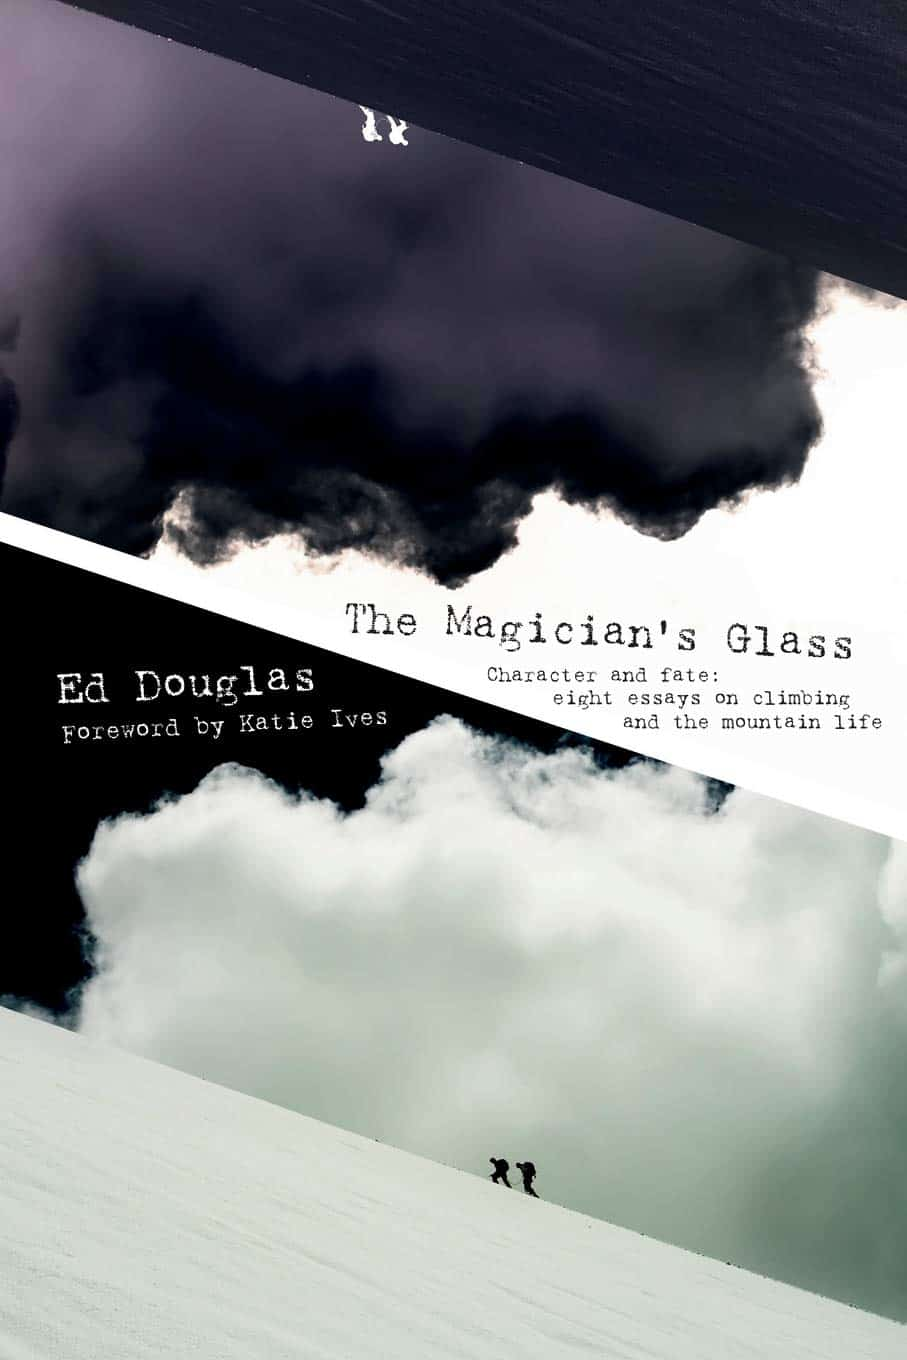 The Magicians Glass by Ed Douglas